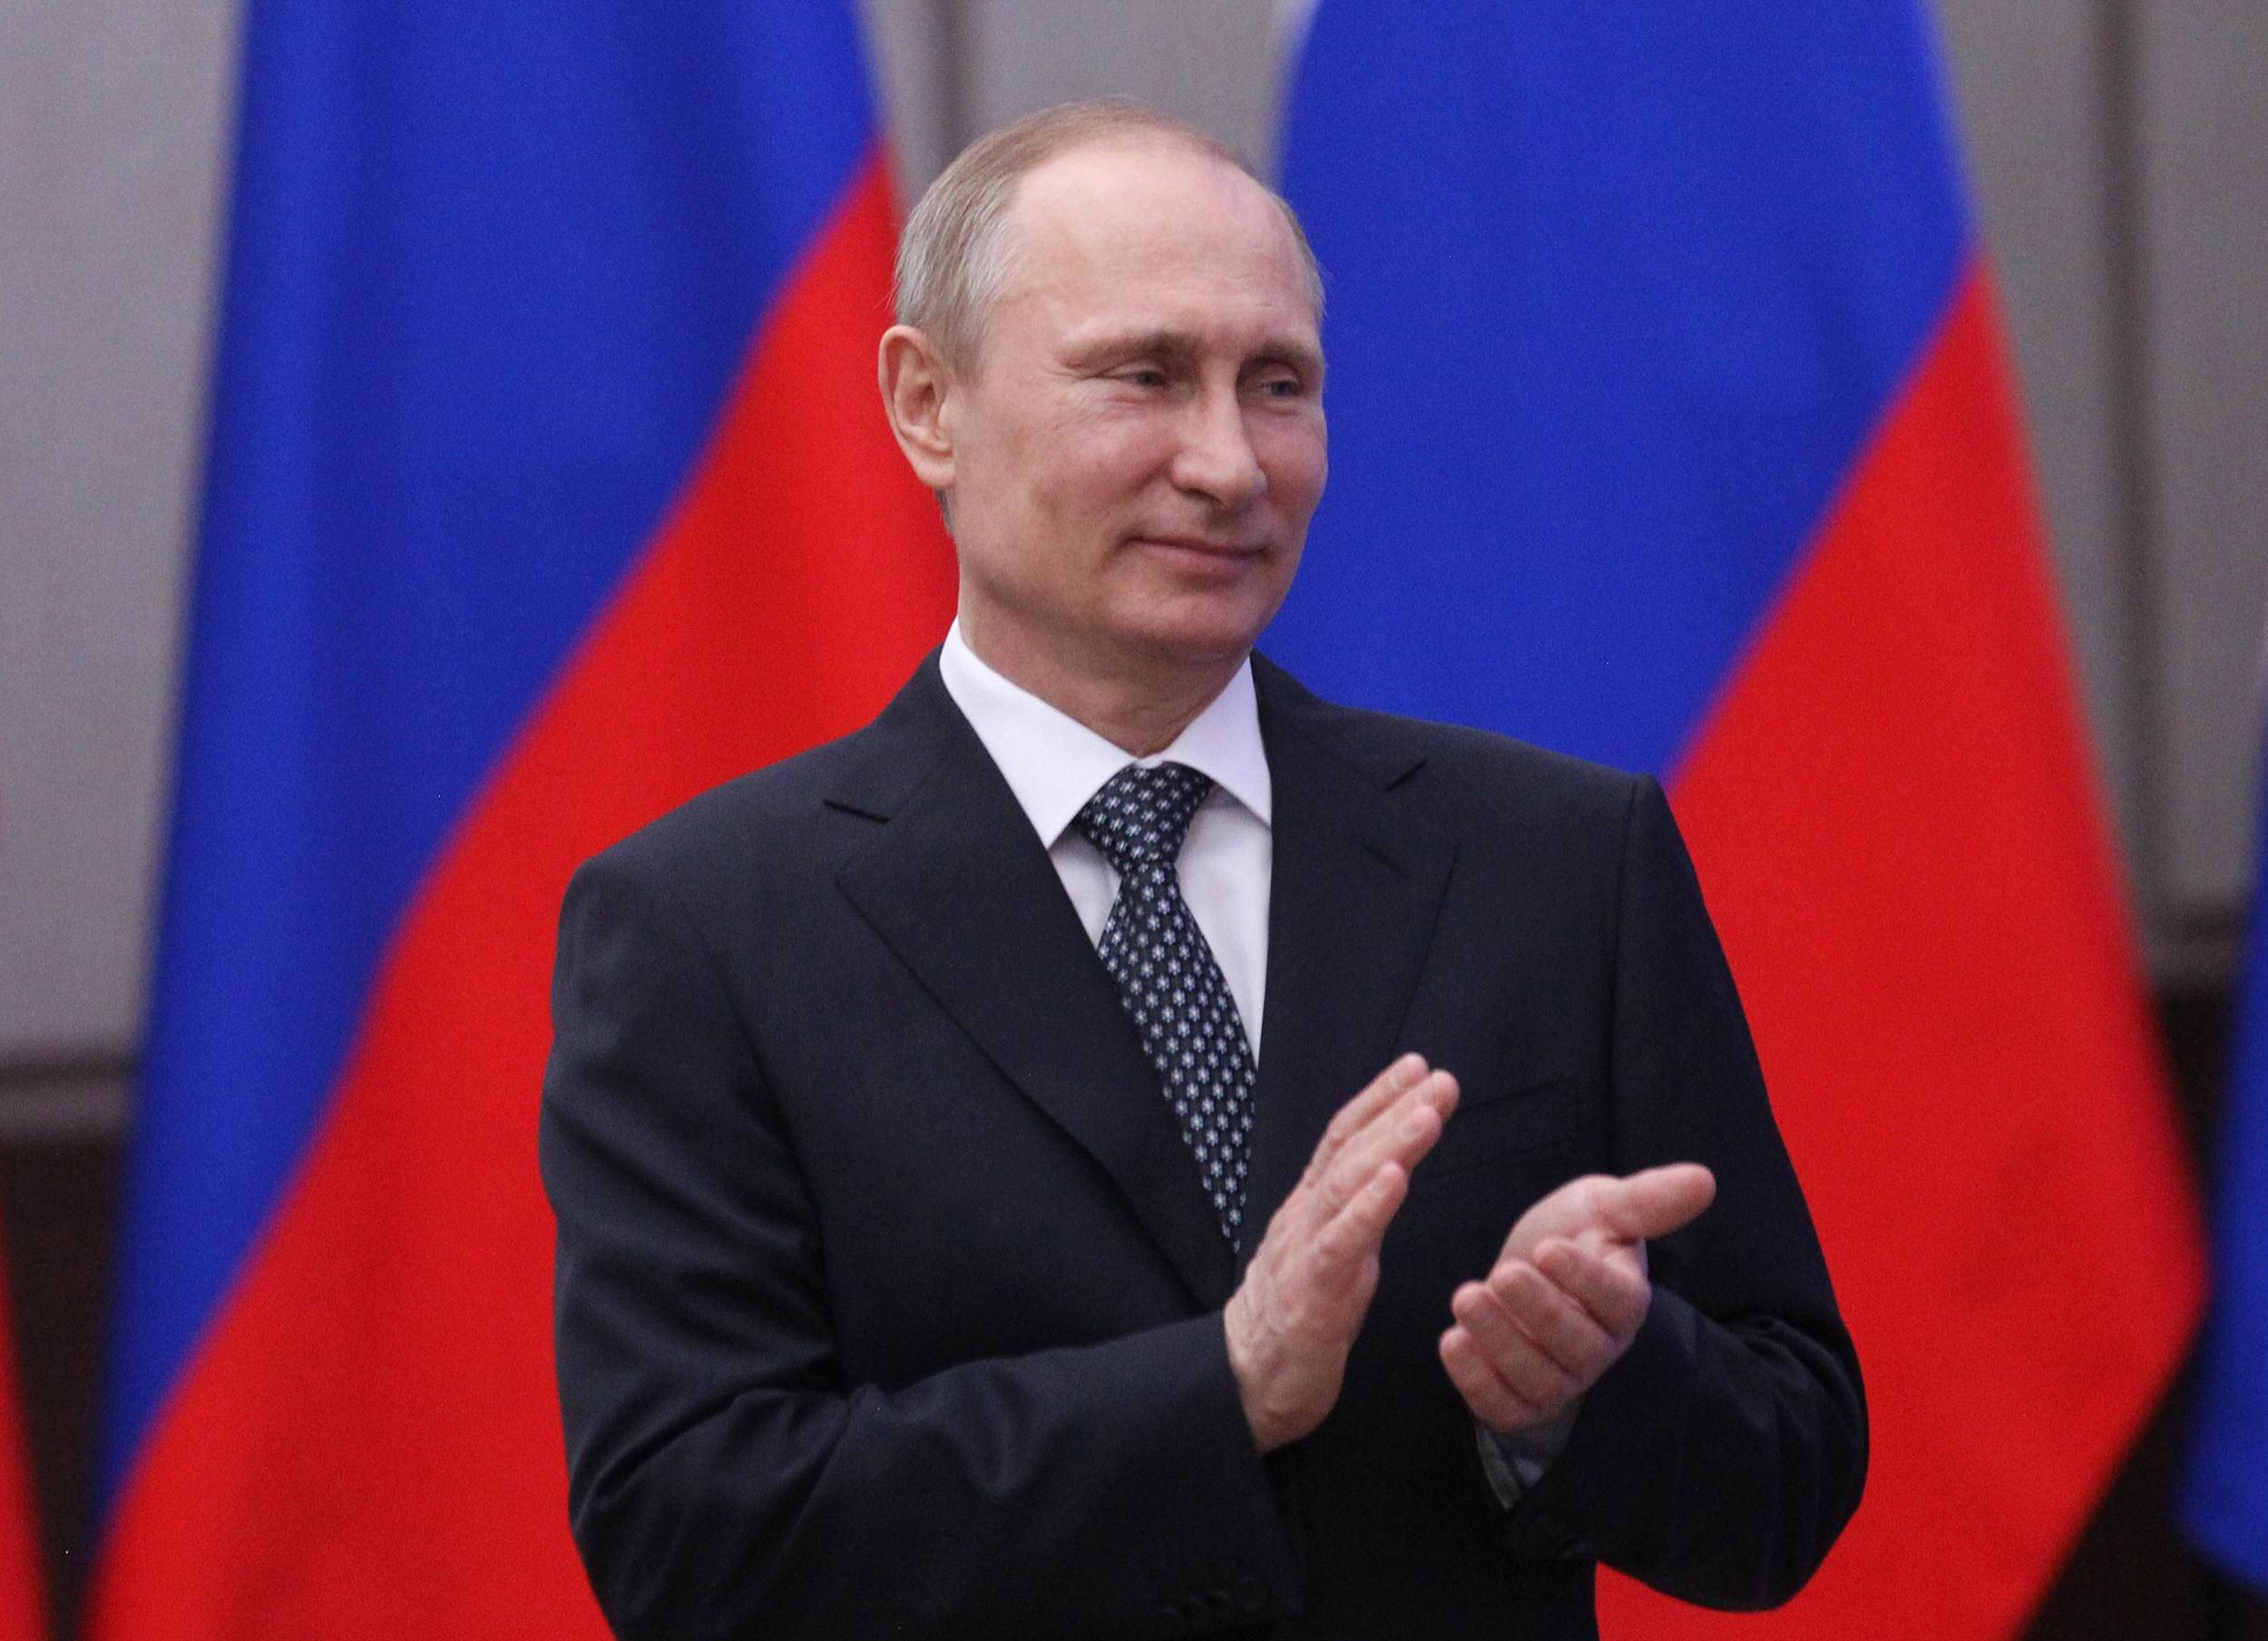 Vladimir Putin Wallpapers Backgrounds